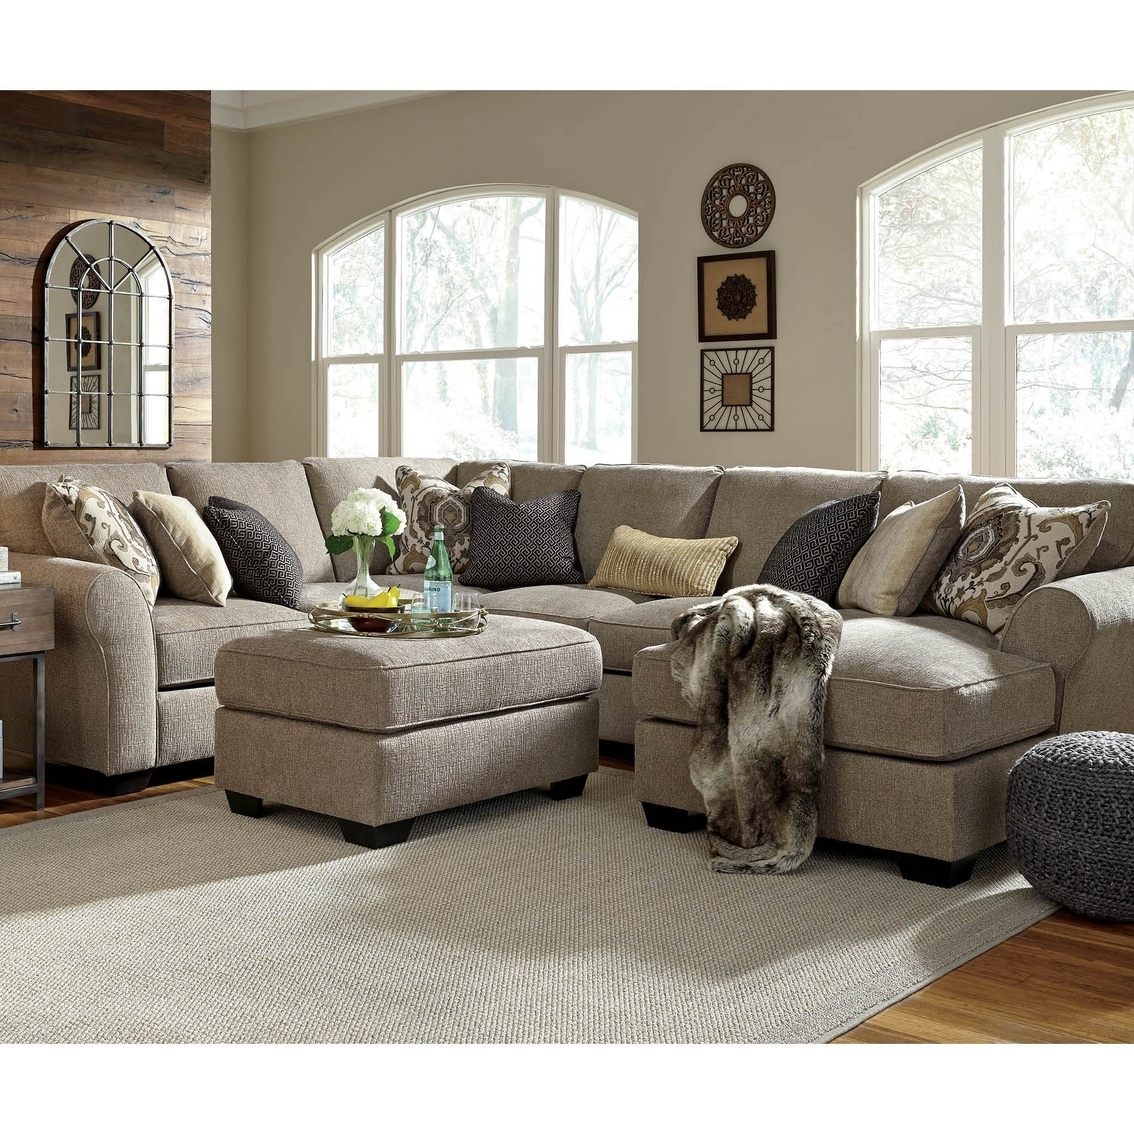 Laf Sofa Raf Loveseat | Baci Living Room Throughout Turdur 3 Piece Sectionals With Raf Loveseat (Image 12 of 25)